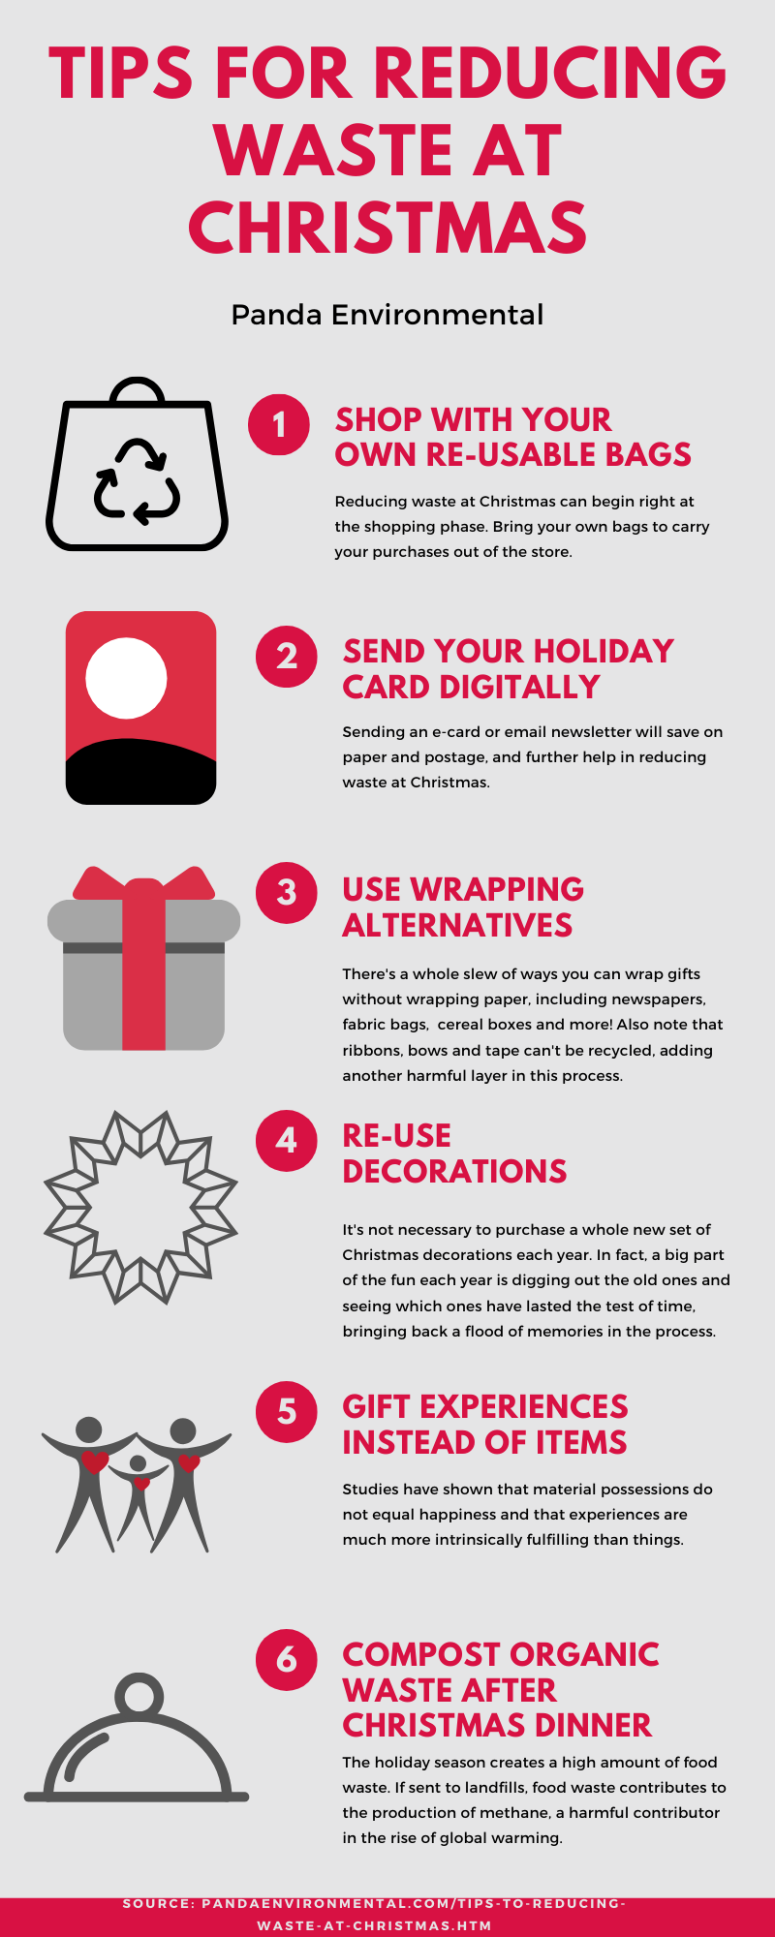 Tips For Reducing Waste At Christmas